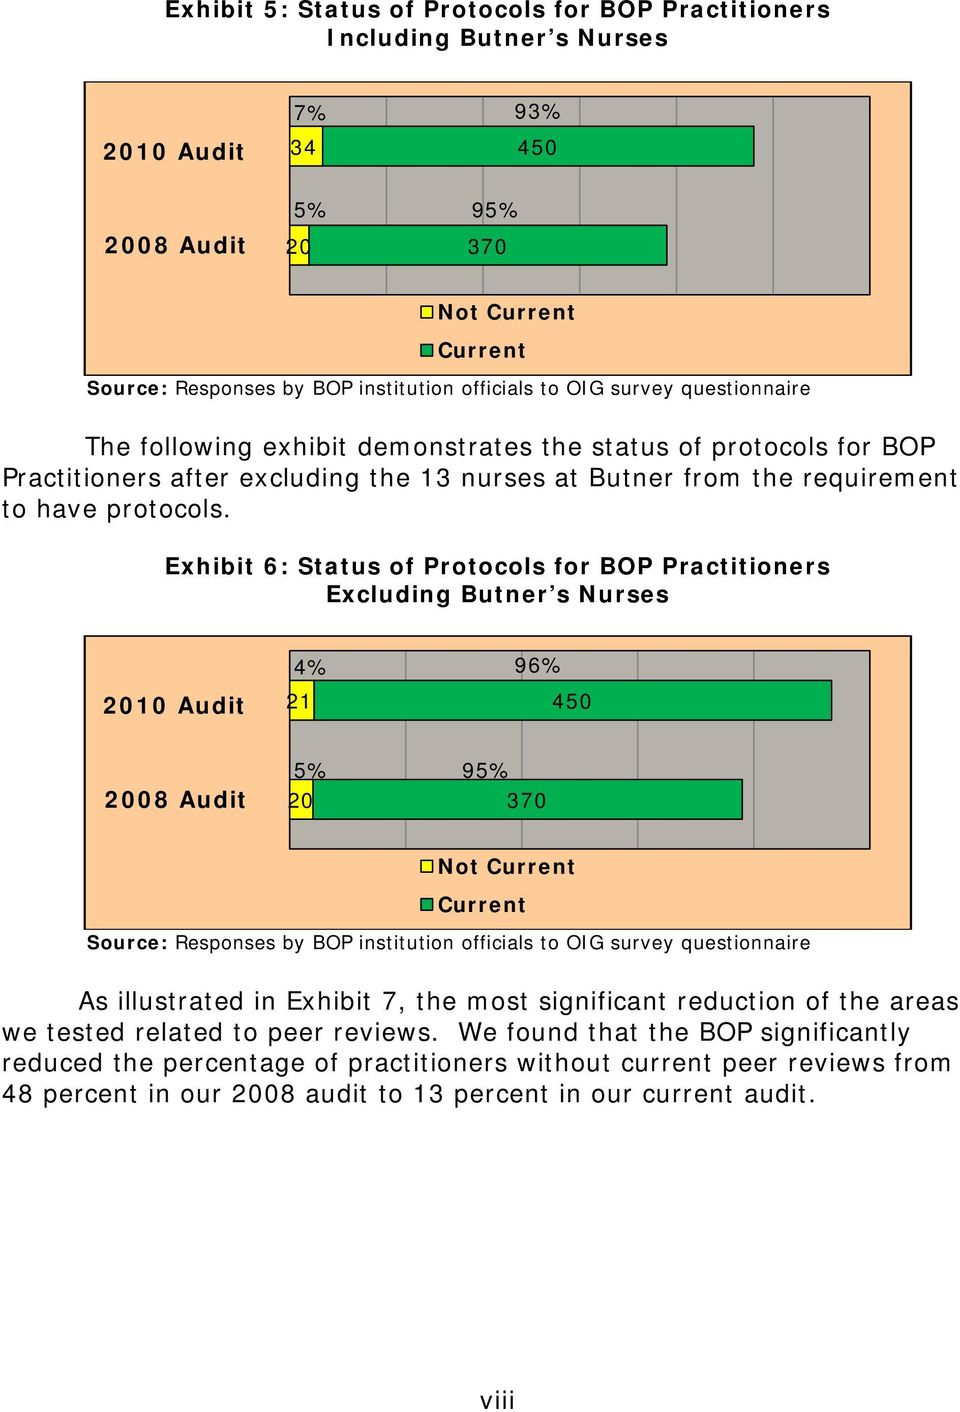 Exhibit 6: Status of Protocols for BOP Practitioners Excluding Butner s Nurses 4% 96% 2010 Audit 21 450 2008 Audit 5% 95% 20 370 Not Current Current Source: Responses by BOP institution officials to